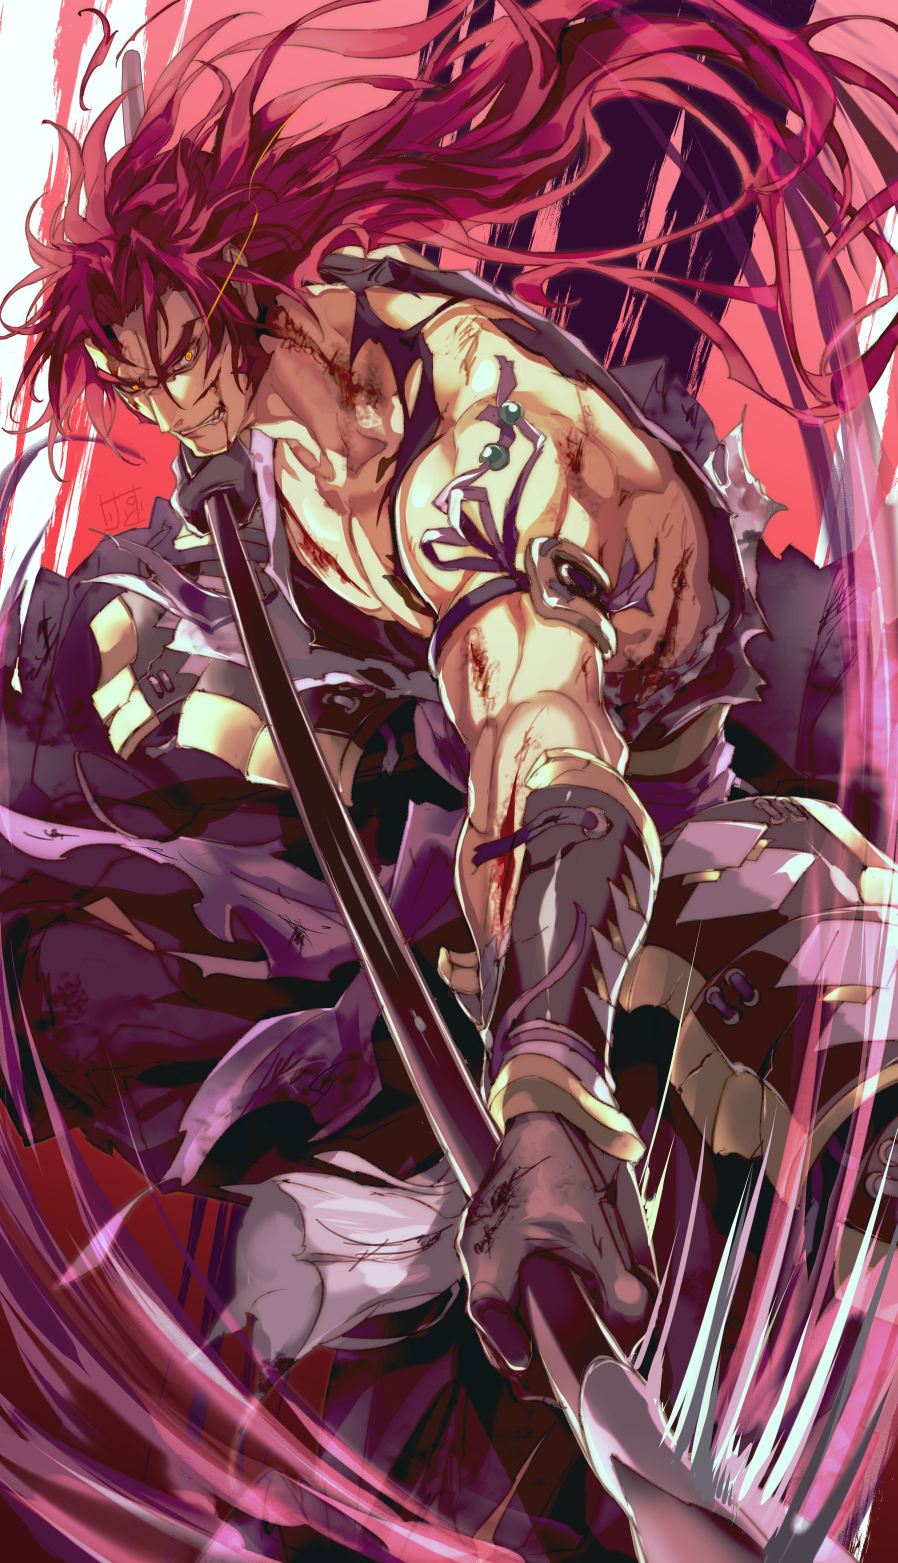 1boy blood clenched_teeth glowing glowing_eye highres japanese_clothes kesurido long_hair looking_at_viewer male_focus muscle polearm ponytail purple_hair sideburns sleeveless solo spear tattoo teeth tonbokiri_(touken_ranbu) touken_ranbu weapon yari yellow_eyes